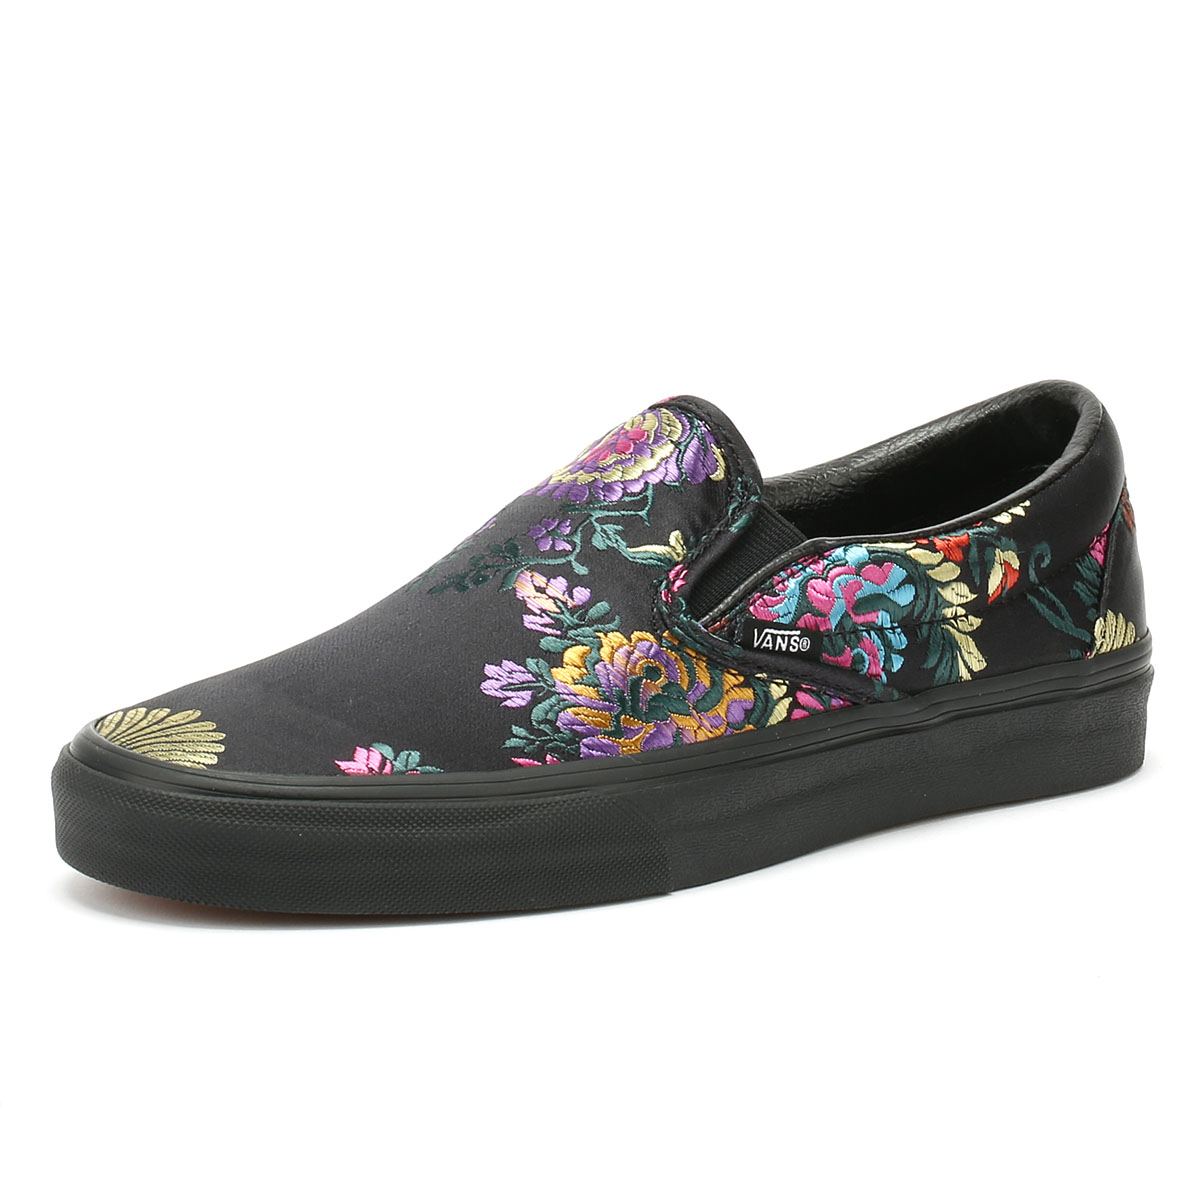 d5cdb55acd Details about Vans Classic Slip on Festival Satin Womens Black Trainers  Casual Skate Shoes